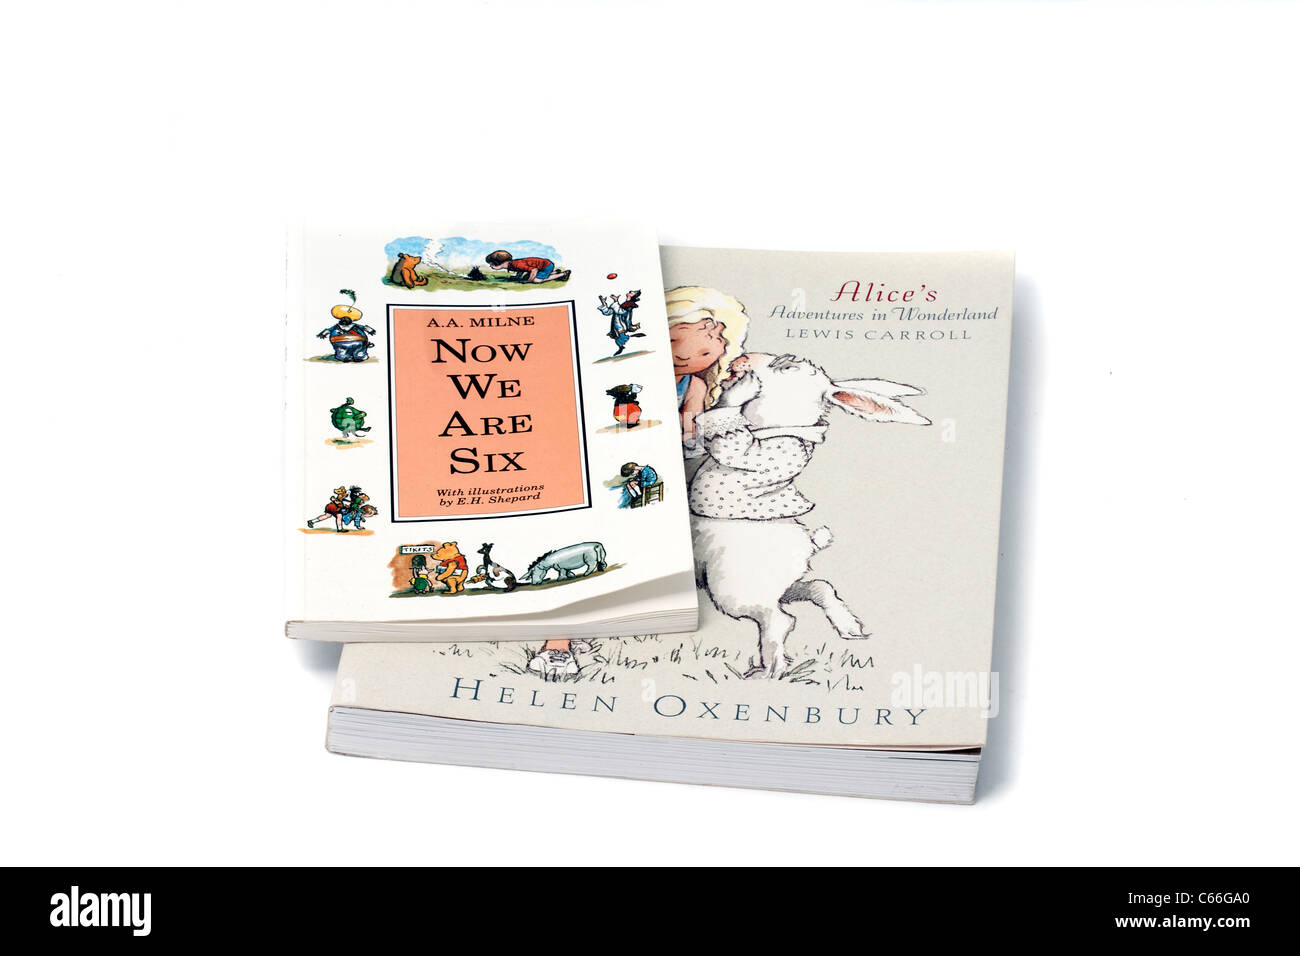 A.A. Milne Now we are Six, and Lewis Carroll's Alic in Wonderland. Two timeless and charming children's - Stock Image